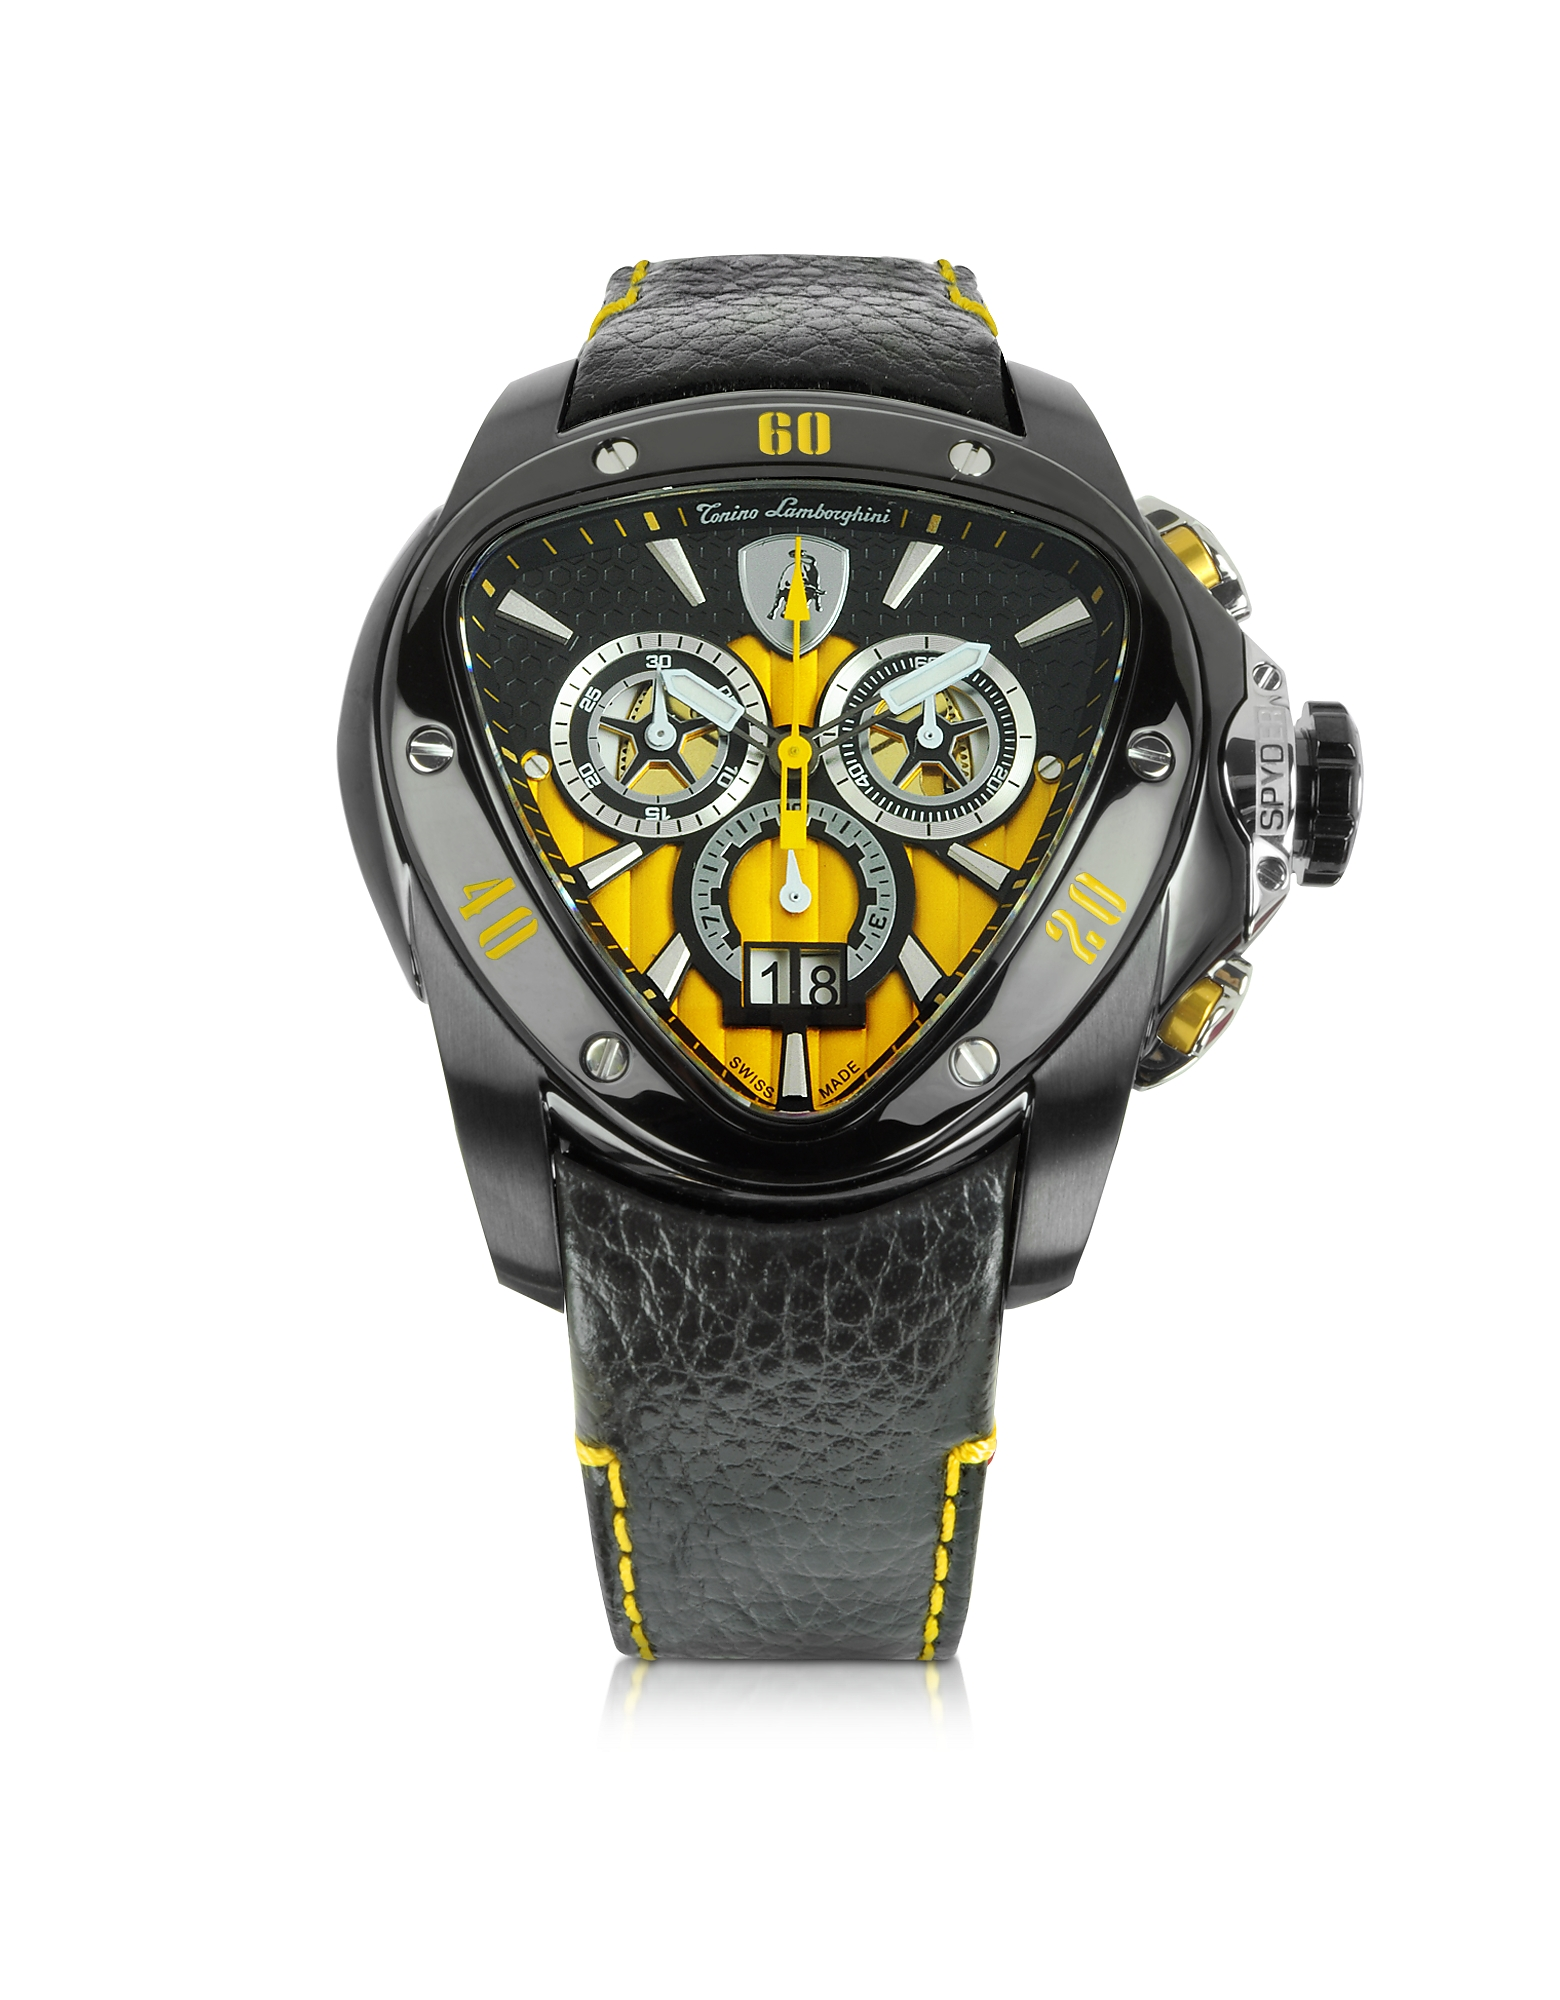 Tonino Lamborghini Men's Watches, Black Stainless Steel Spyder Chronograph Watch w/Yellow Dial